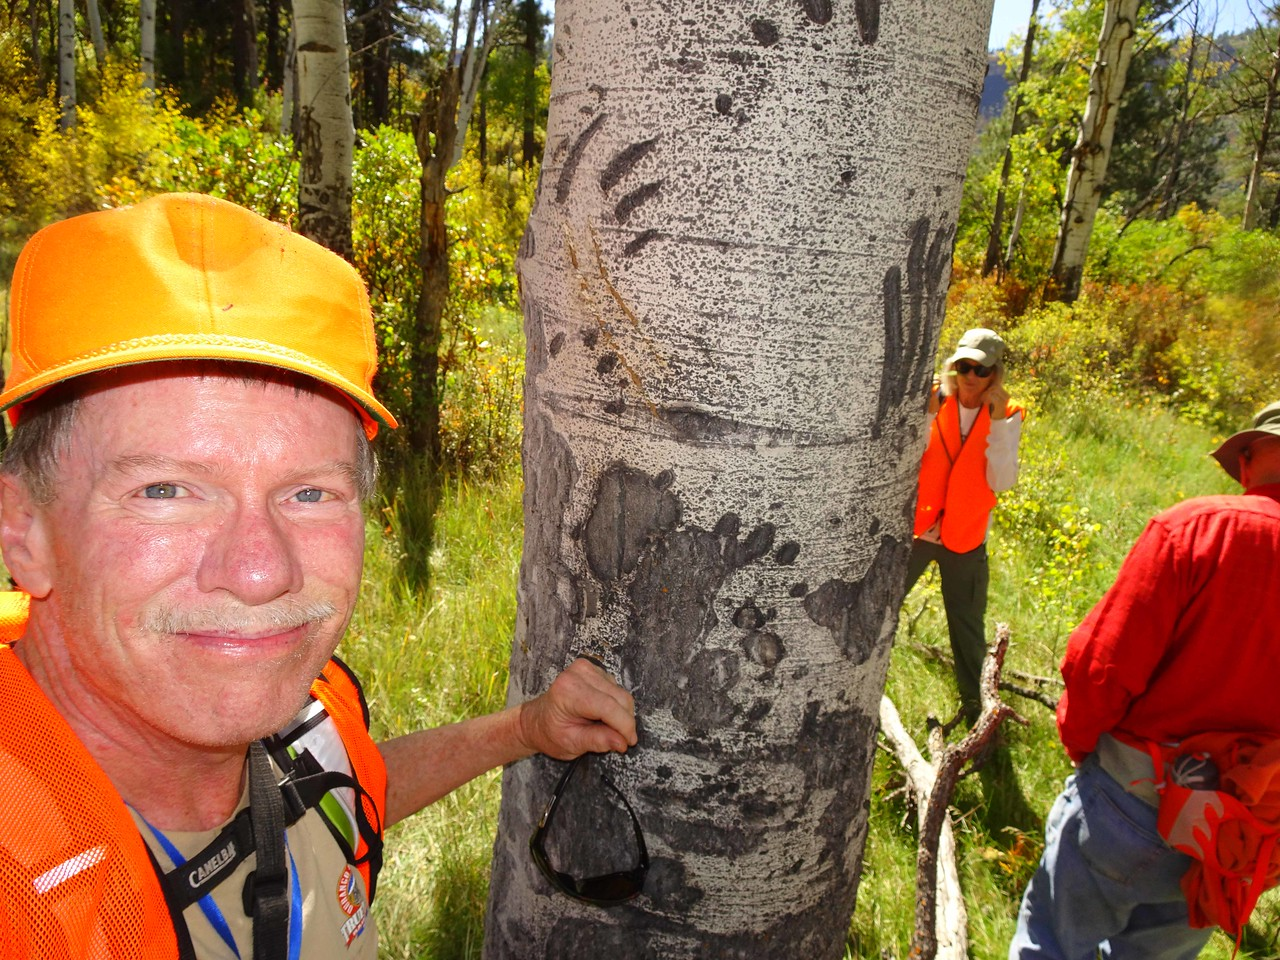 30 Bear claw scratches on an Aspen tree